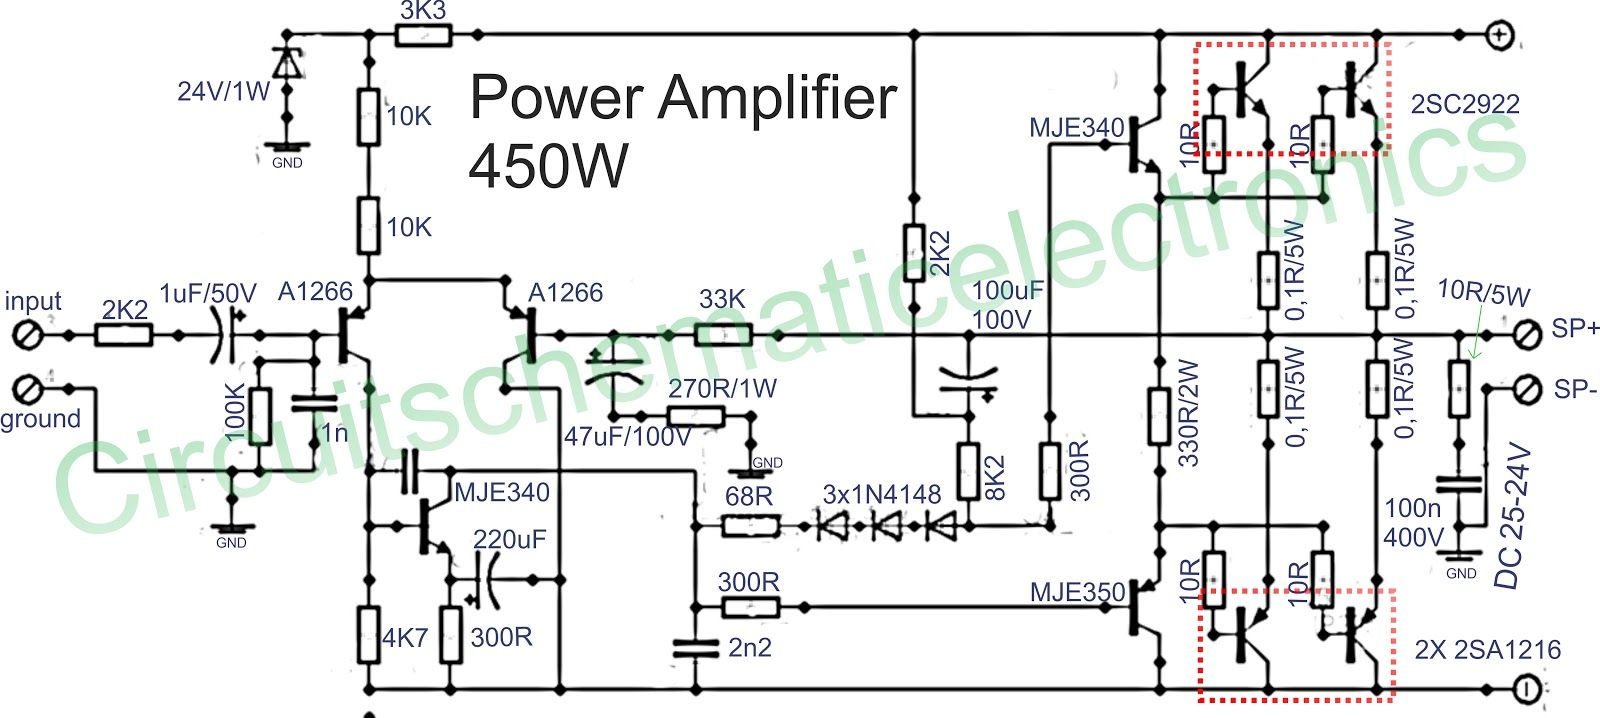 small resolution of power amplifier 450w with sanken